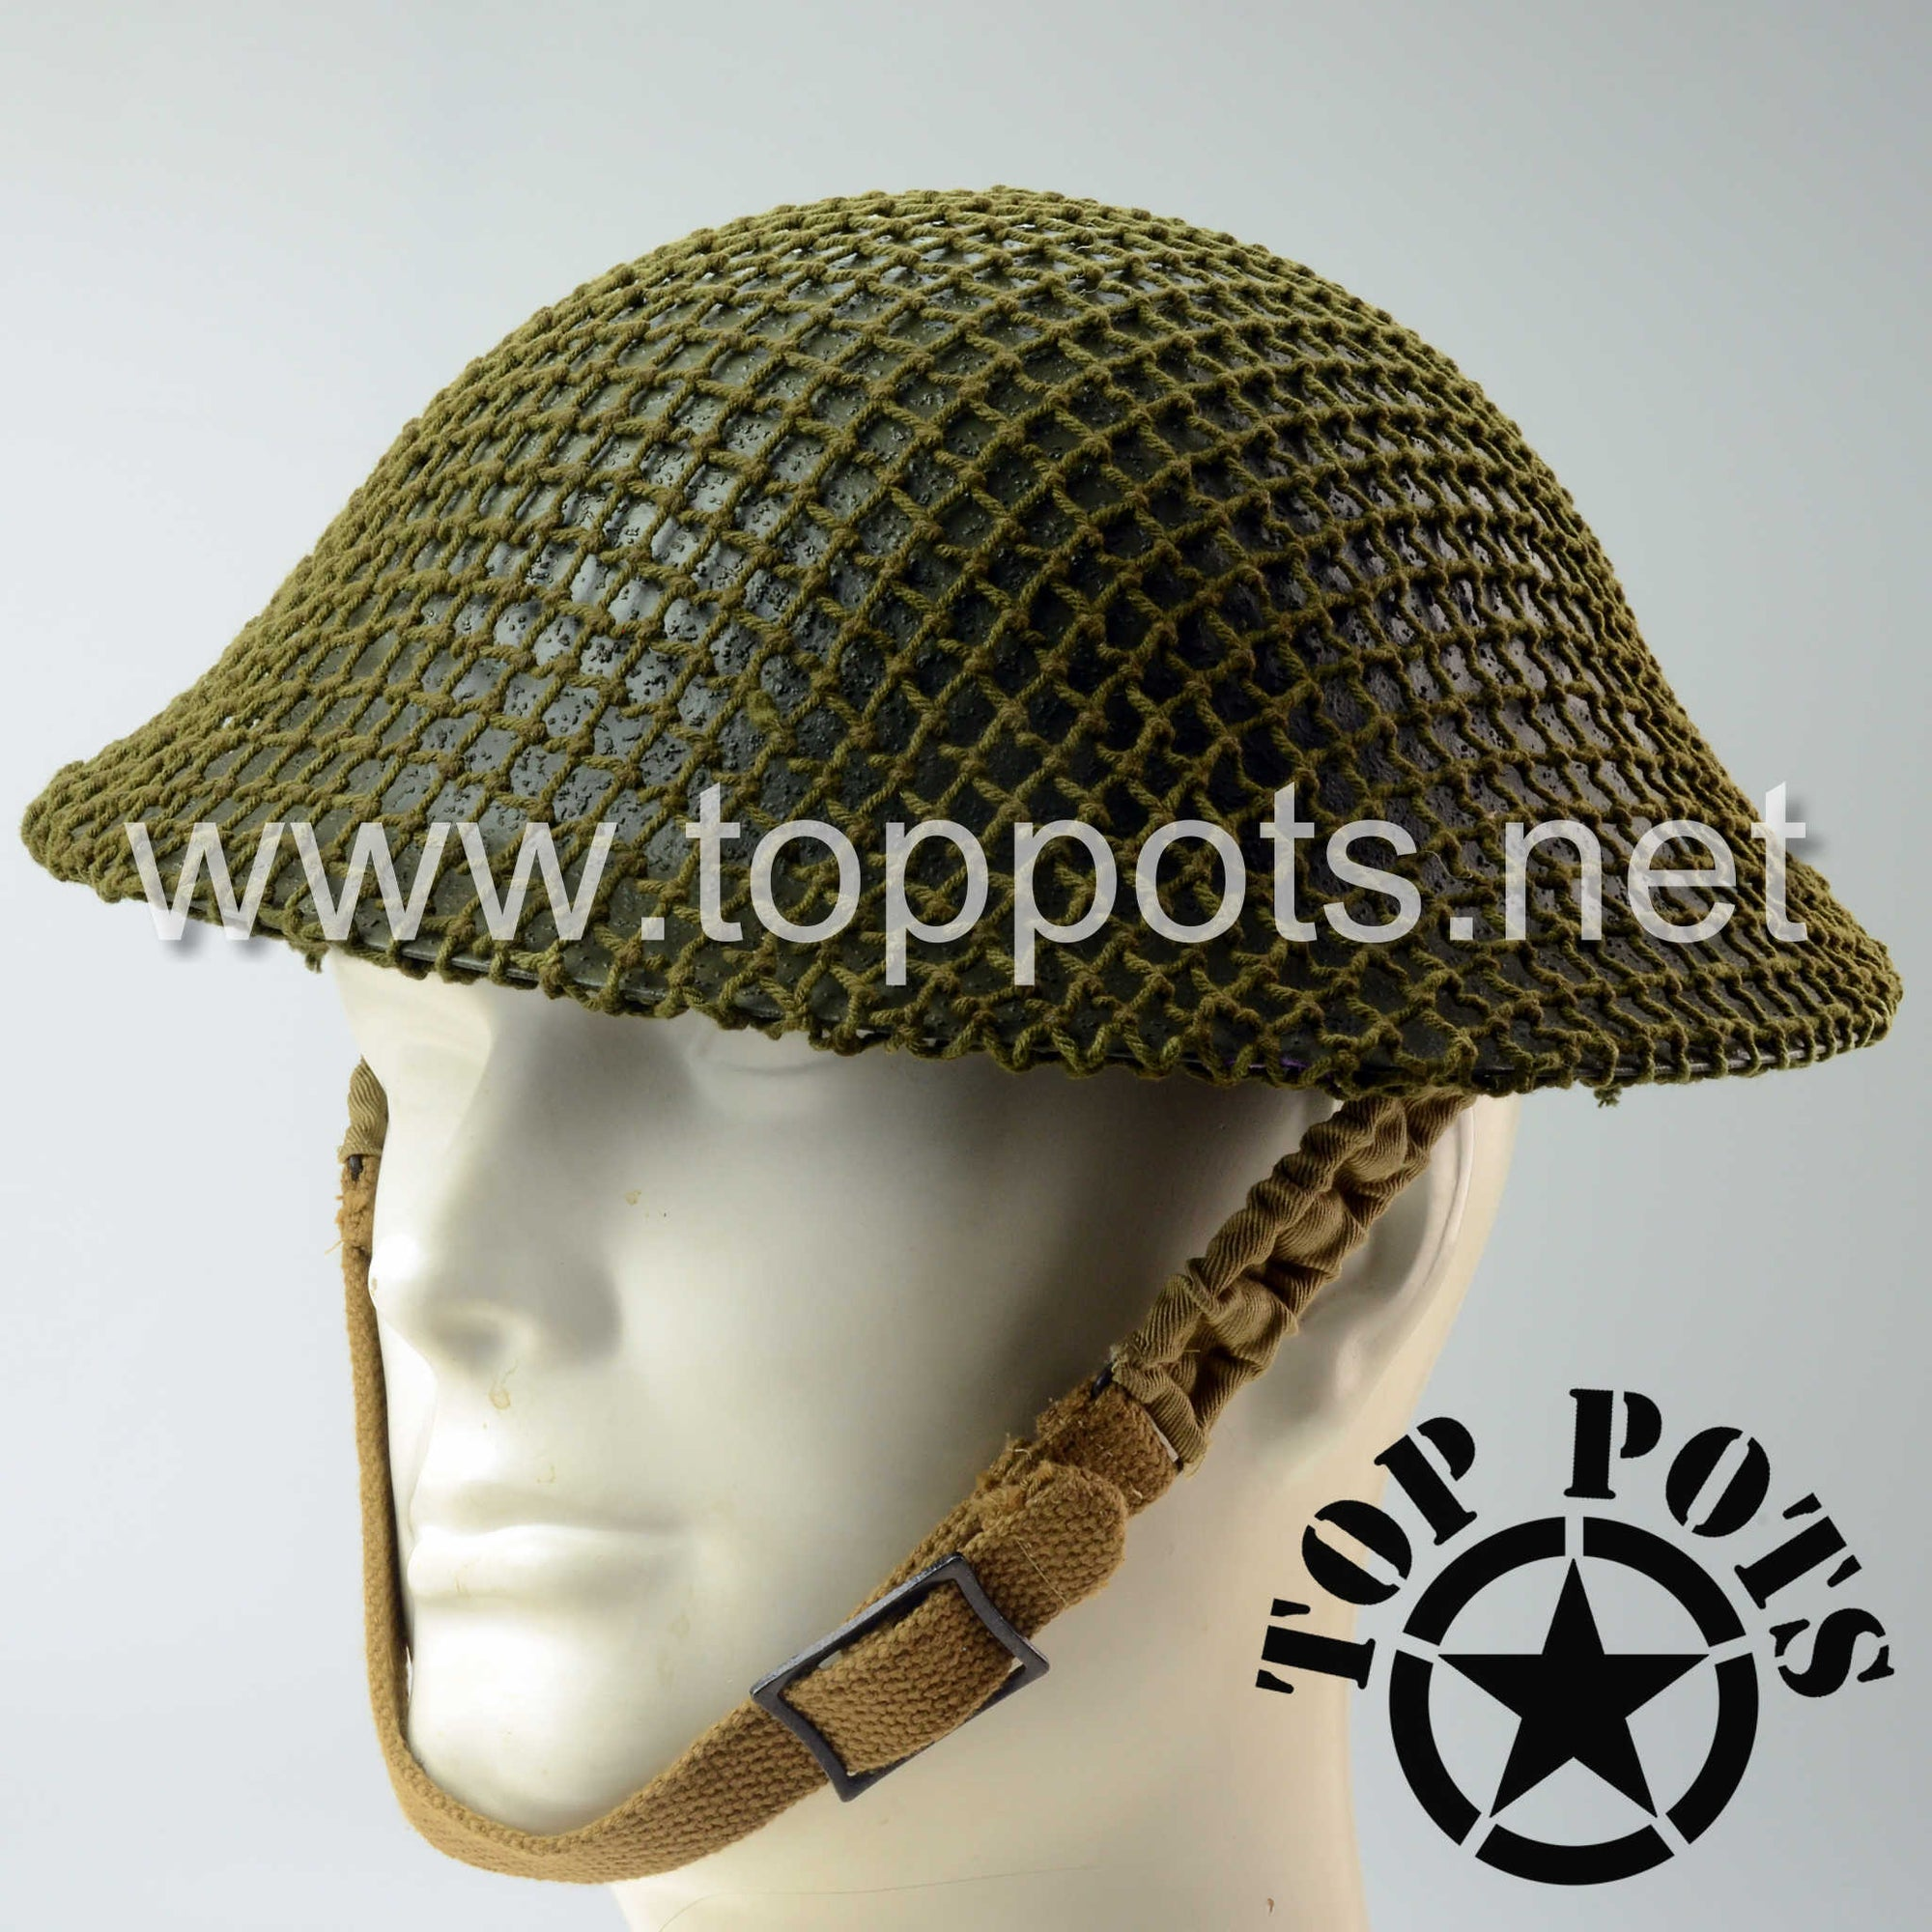 WWII Australian Army Reproduction MKII MK2 Enlisted Brodie Helmet with Original Helmet Net – Field Textured Finish